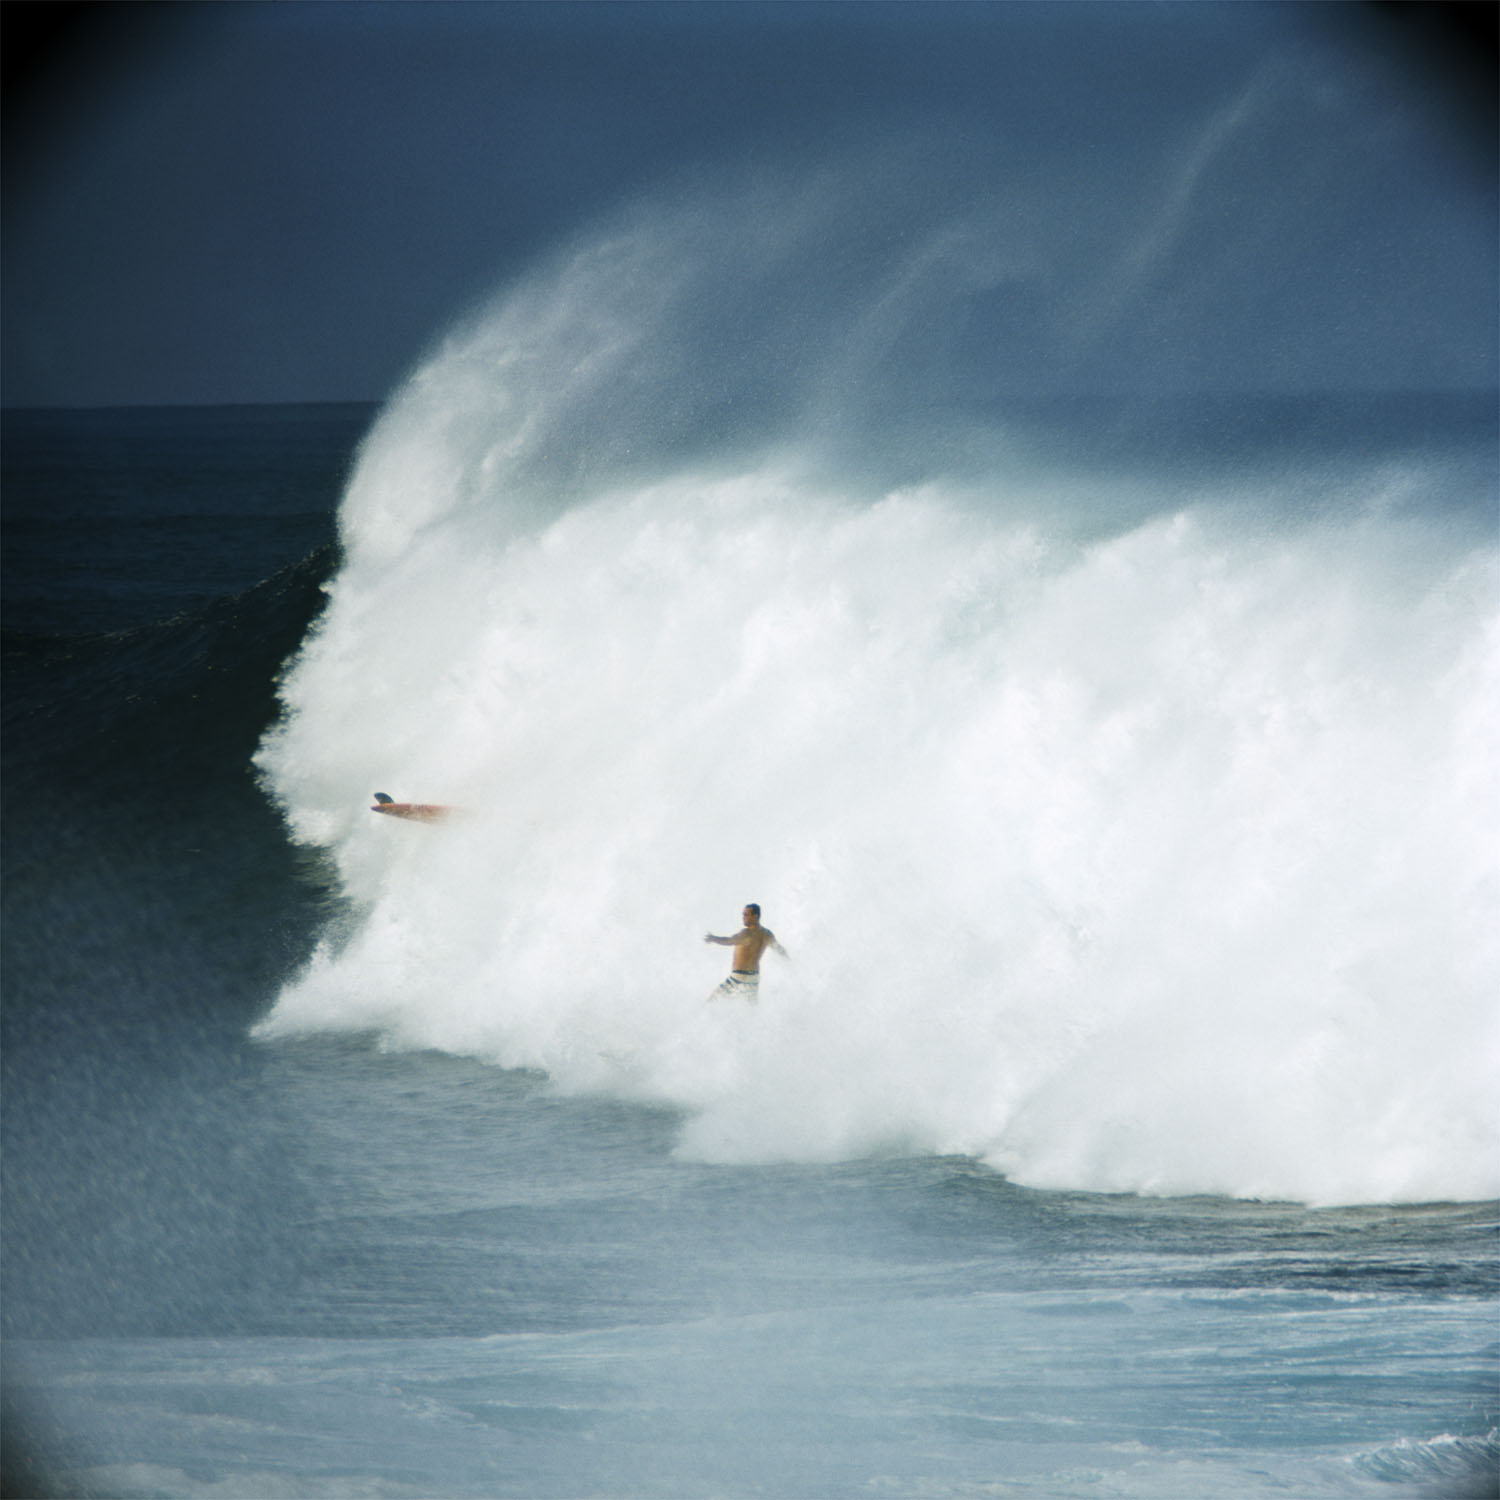 Bobby Cloutier and Greg Noll, Waimea Bay, 1966